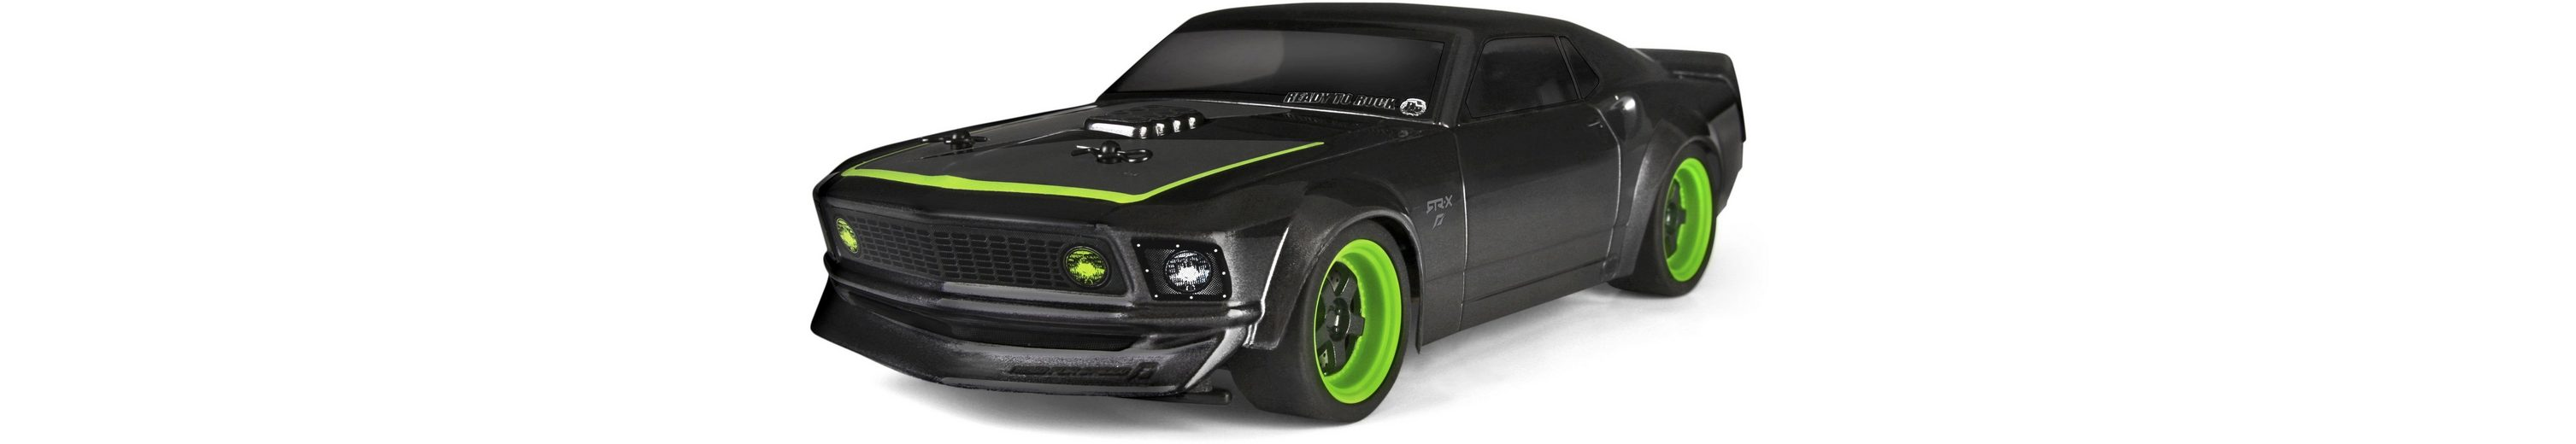 HPI Racing RC Komplettset, »Micro RS4, 1969 Ford Mustang RTR-X 1:18 2,4 GHz«